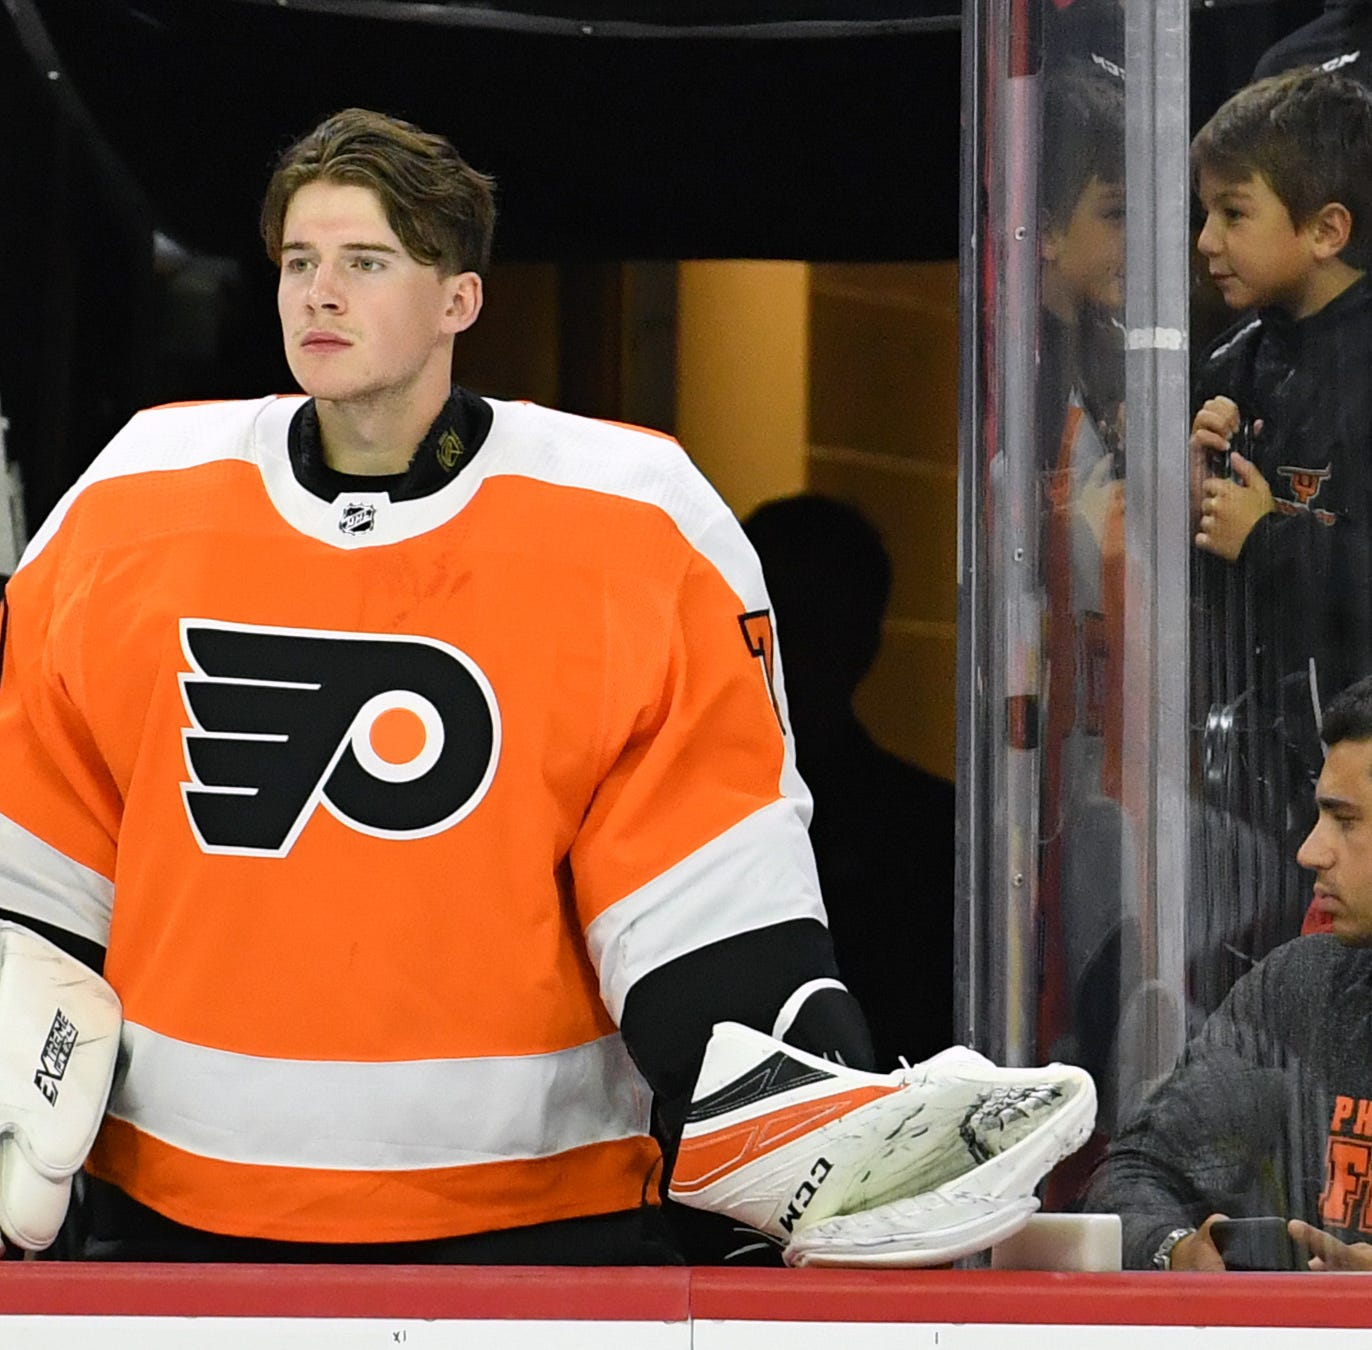 Flyers 5 takeaways: What if Carter Hart is 'last man standing?'